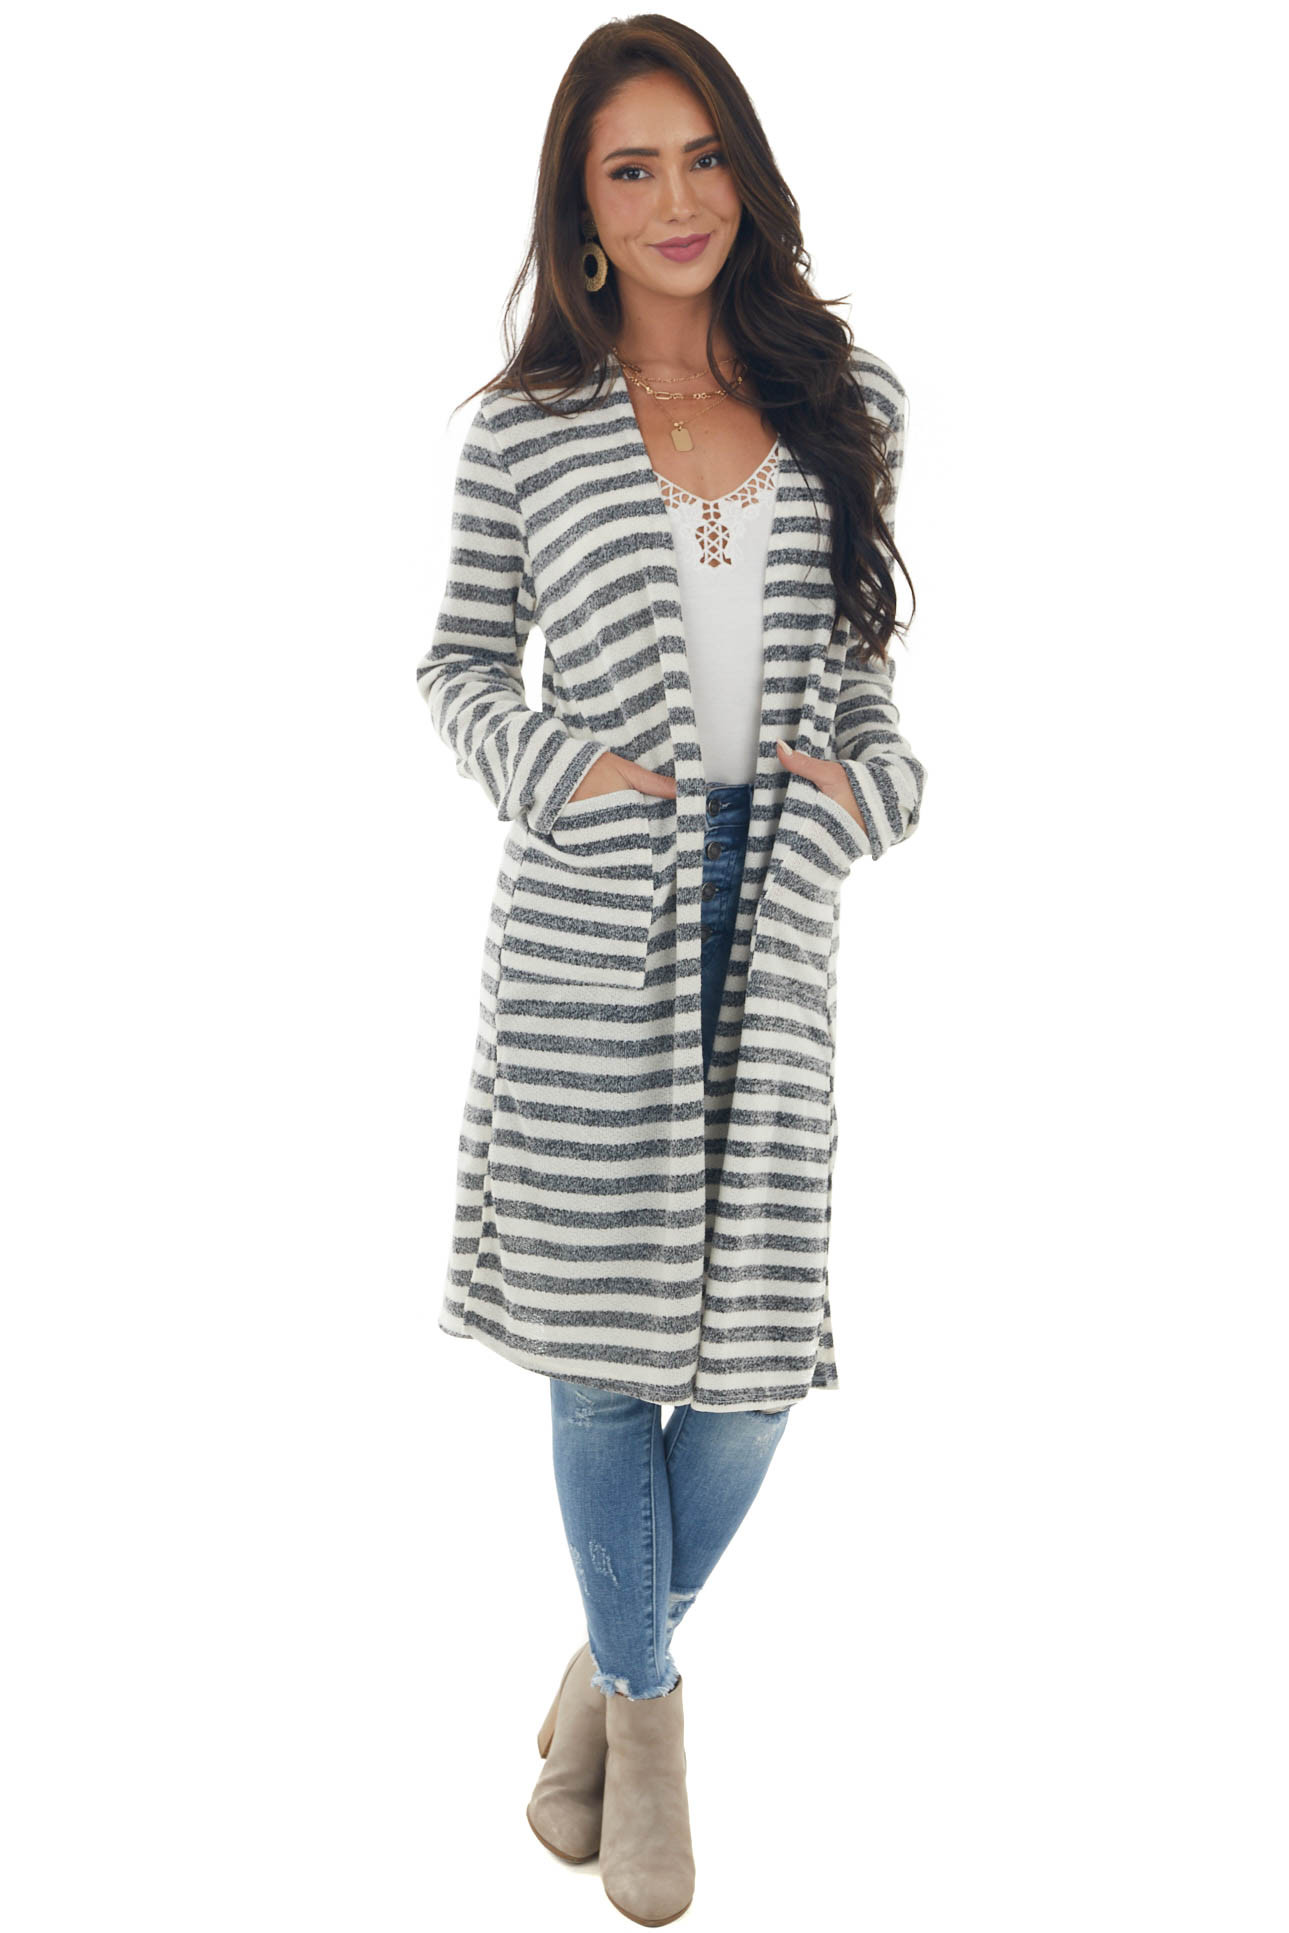 Cream and Charcoal Striped Print Long Cardigan